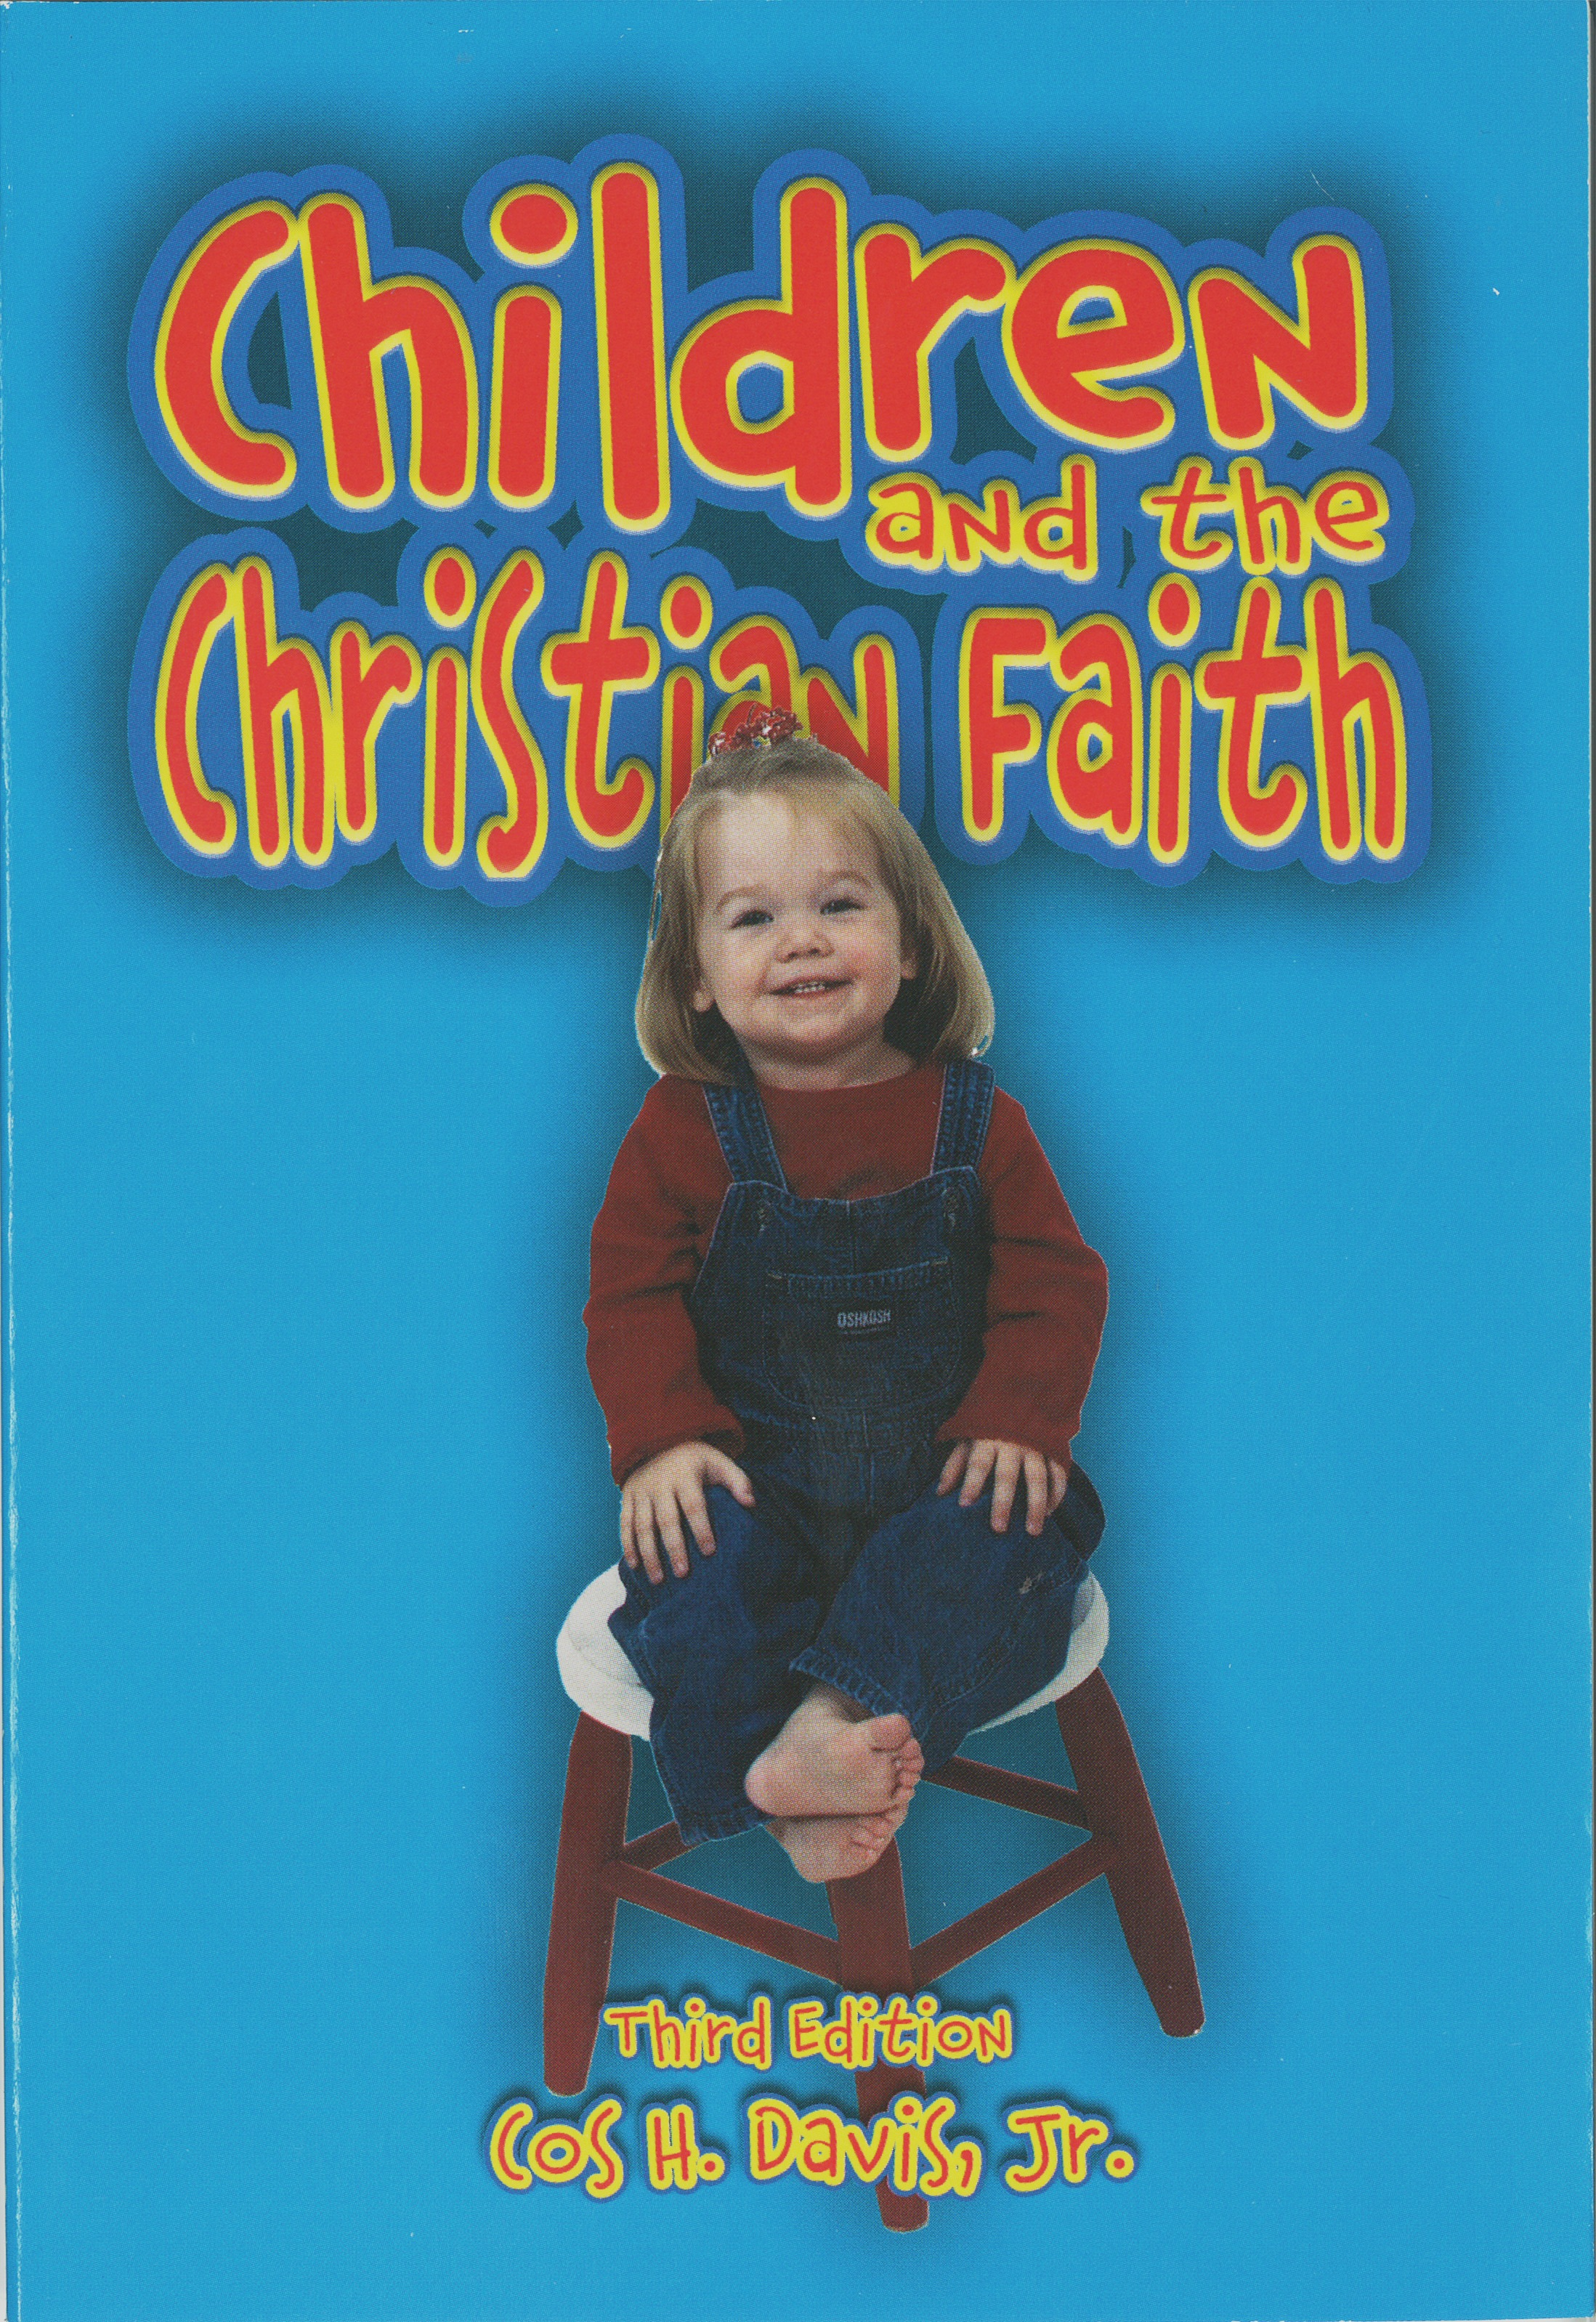 a discussion on bringing up children in the christian faith Transcript of how christian churches help with the upbringing of children and family life  the best place for bringing up children.